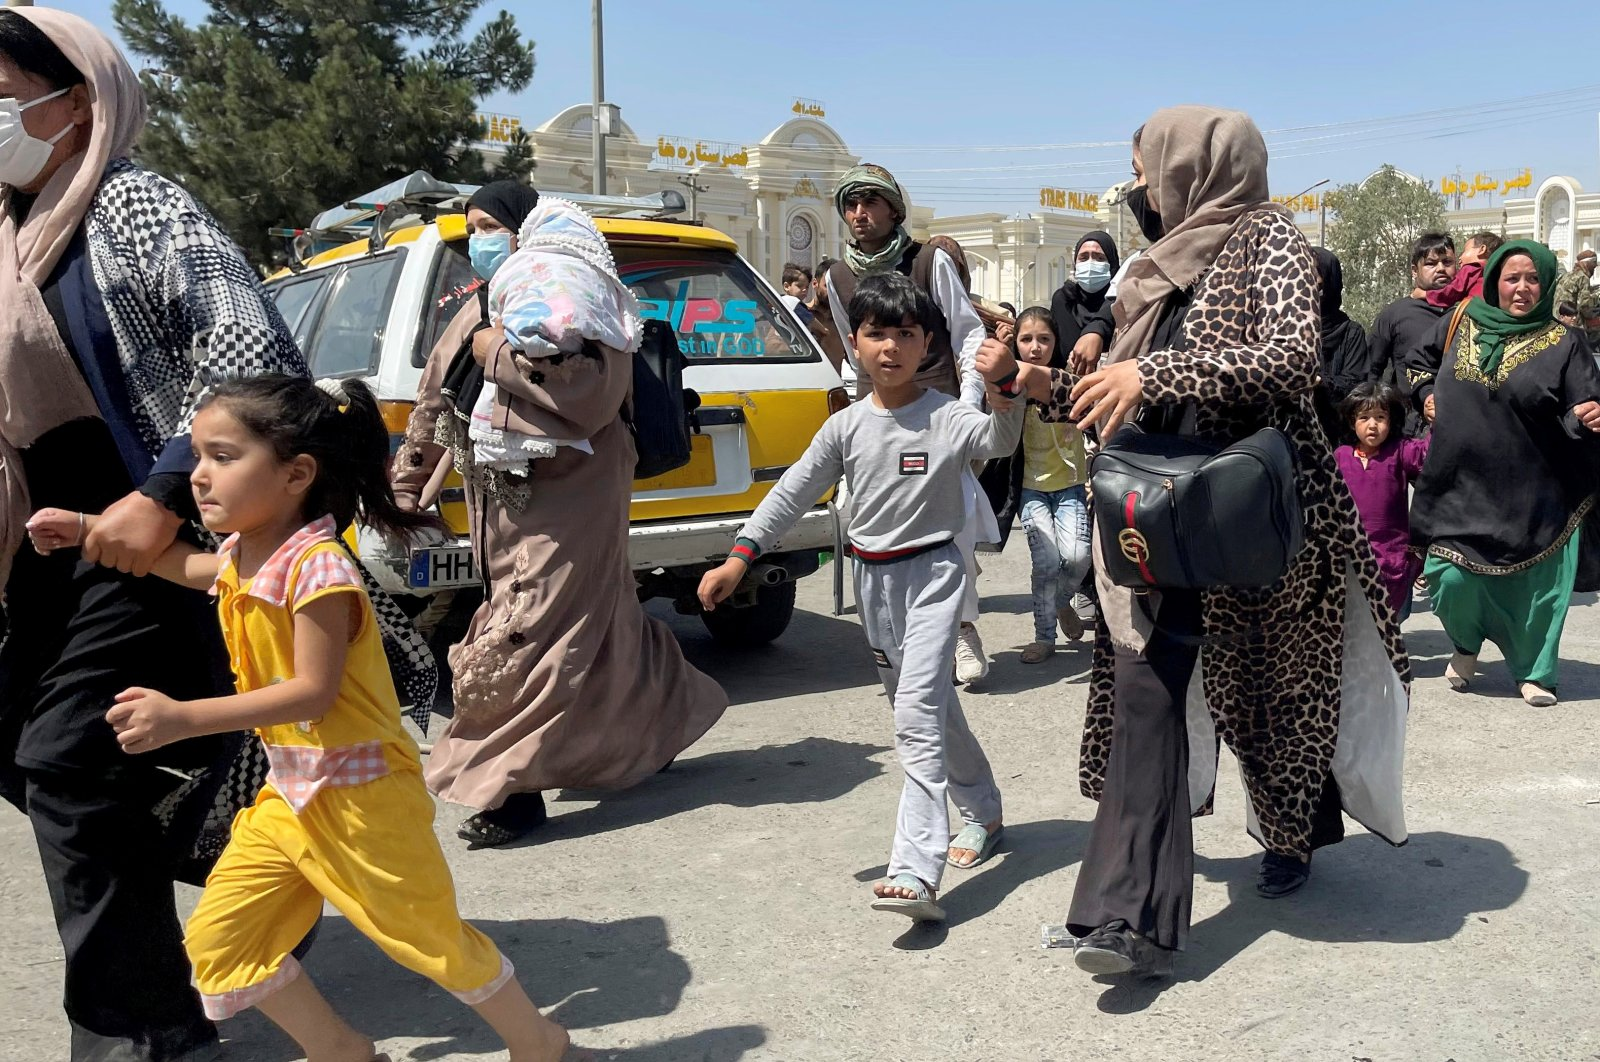 Women with their children try to get inside Kabul Hamid Karzai International Airport, Kabul, Afghanistan Aug. 16, 2021. (Reuters Photo)